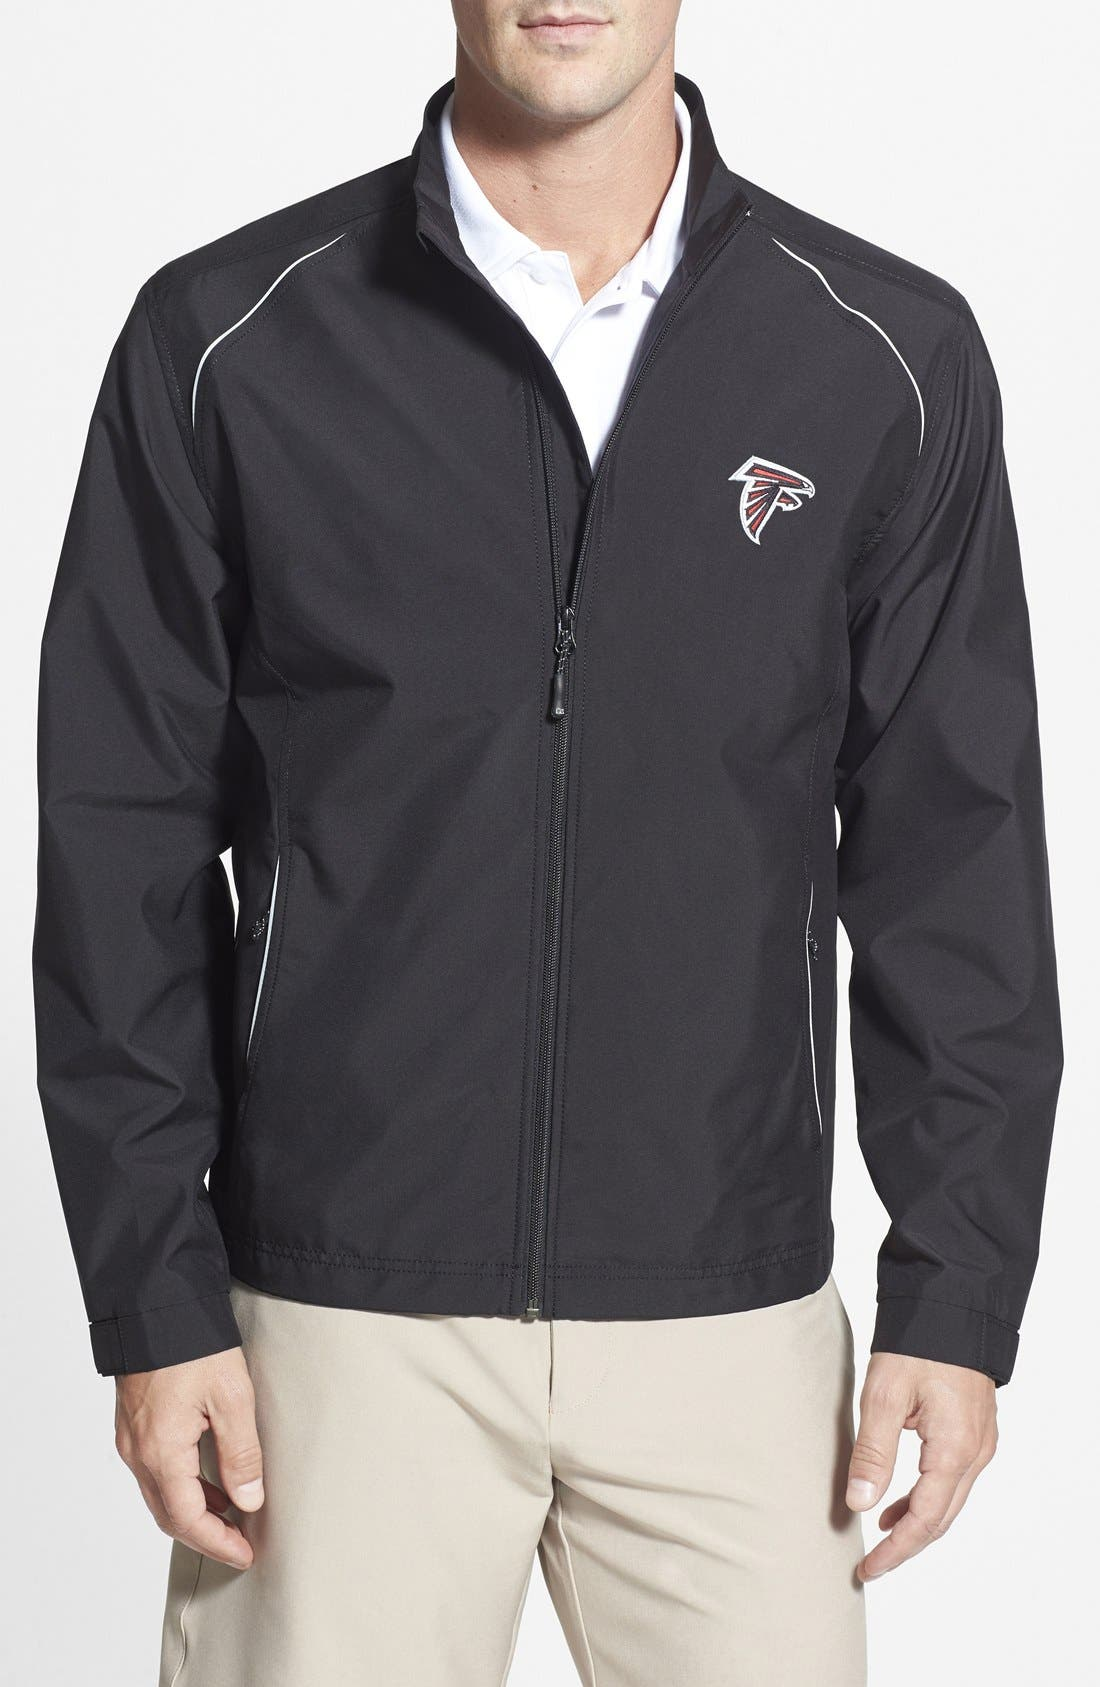 Atlanta Falcons - Beacon WeatherTec Wind & Water Resistant Jacket,                             Main thumbnail 1, color,                             001